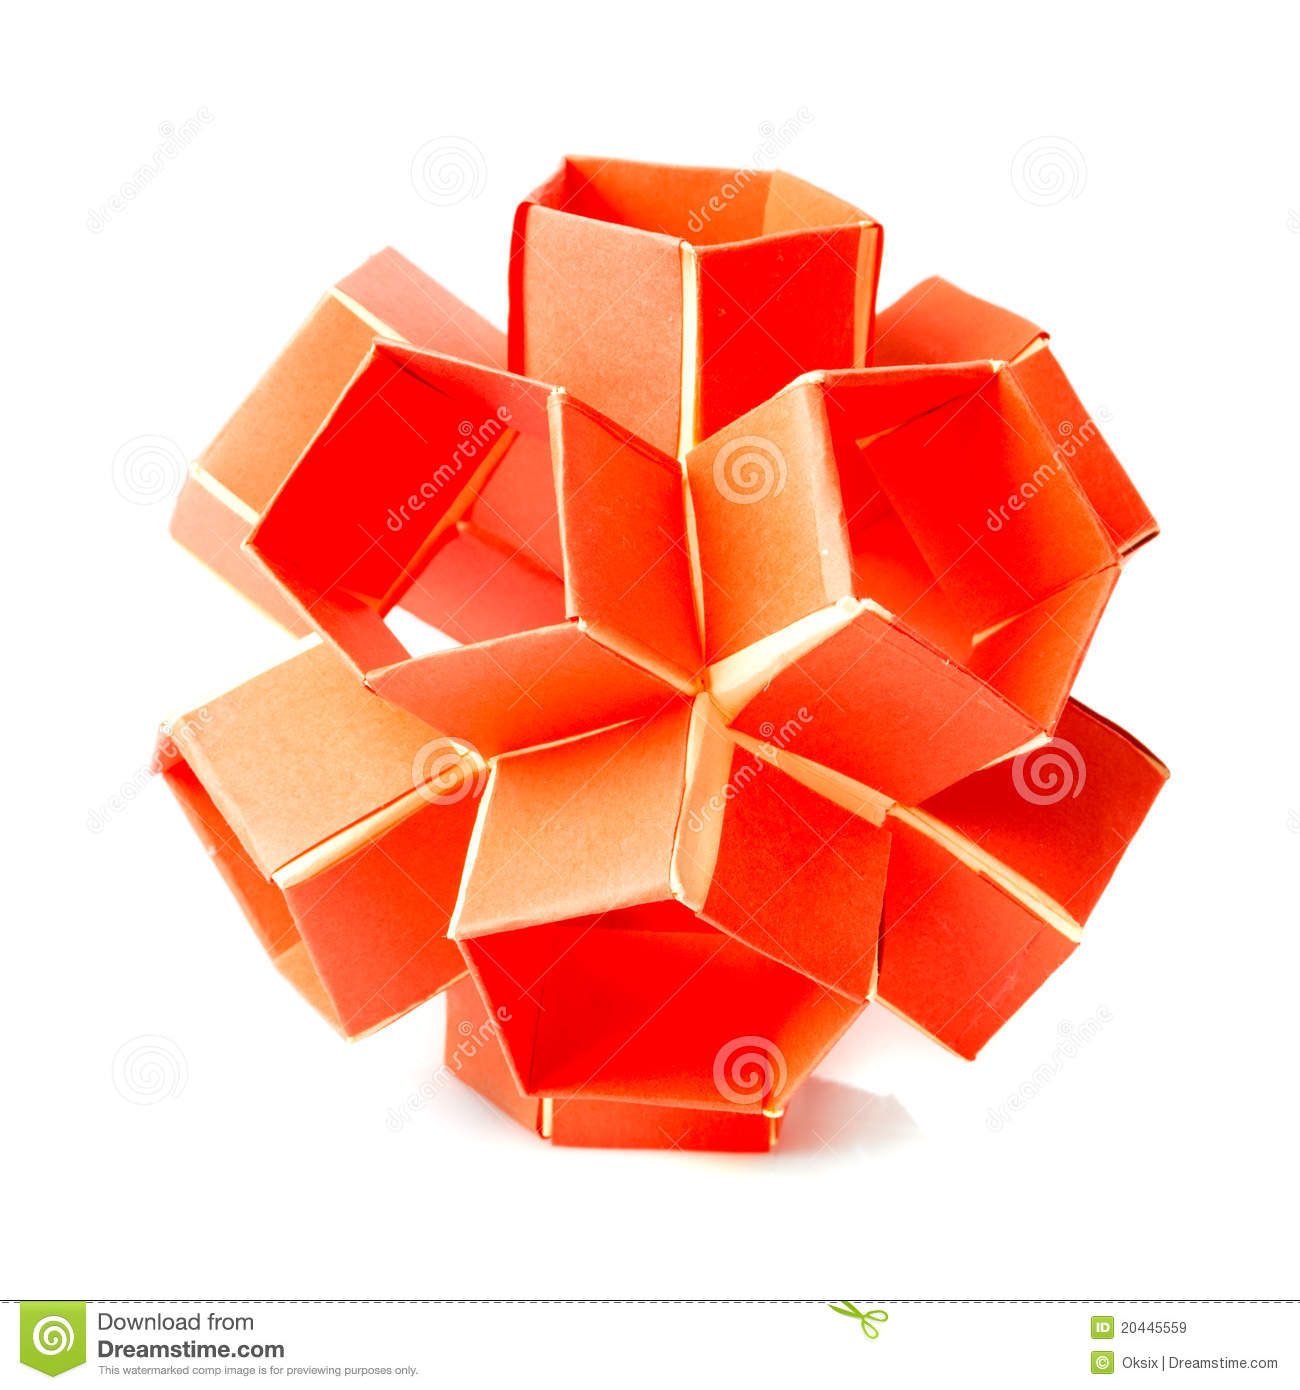 Origami Snapology Royalty Free Stock Images - Image: 20445559 - photo#12